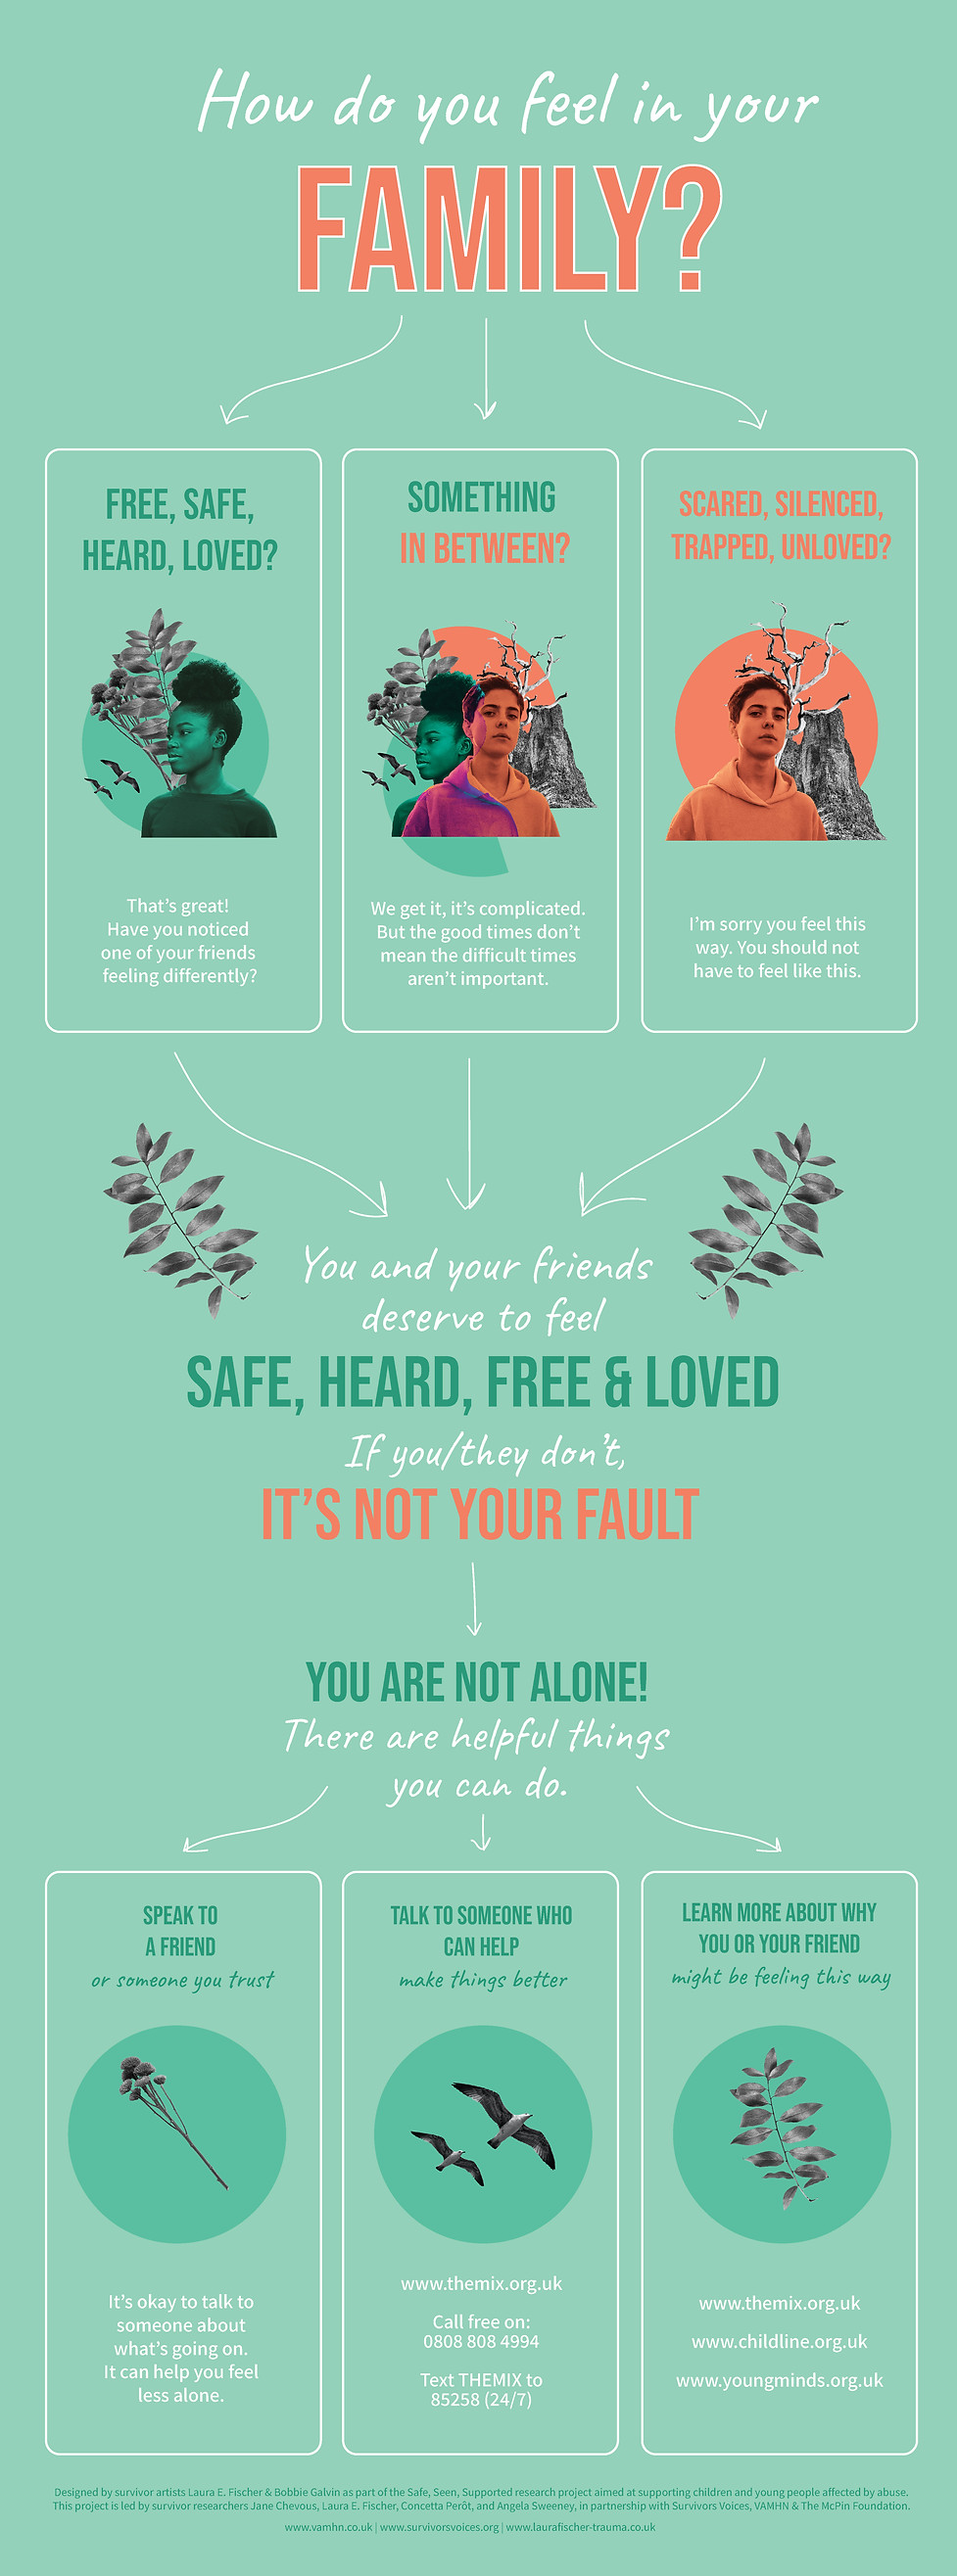 SafeSeenSupported_infographic.jpg